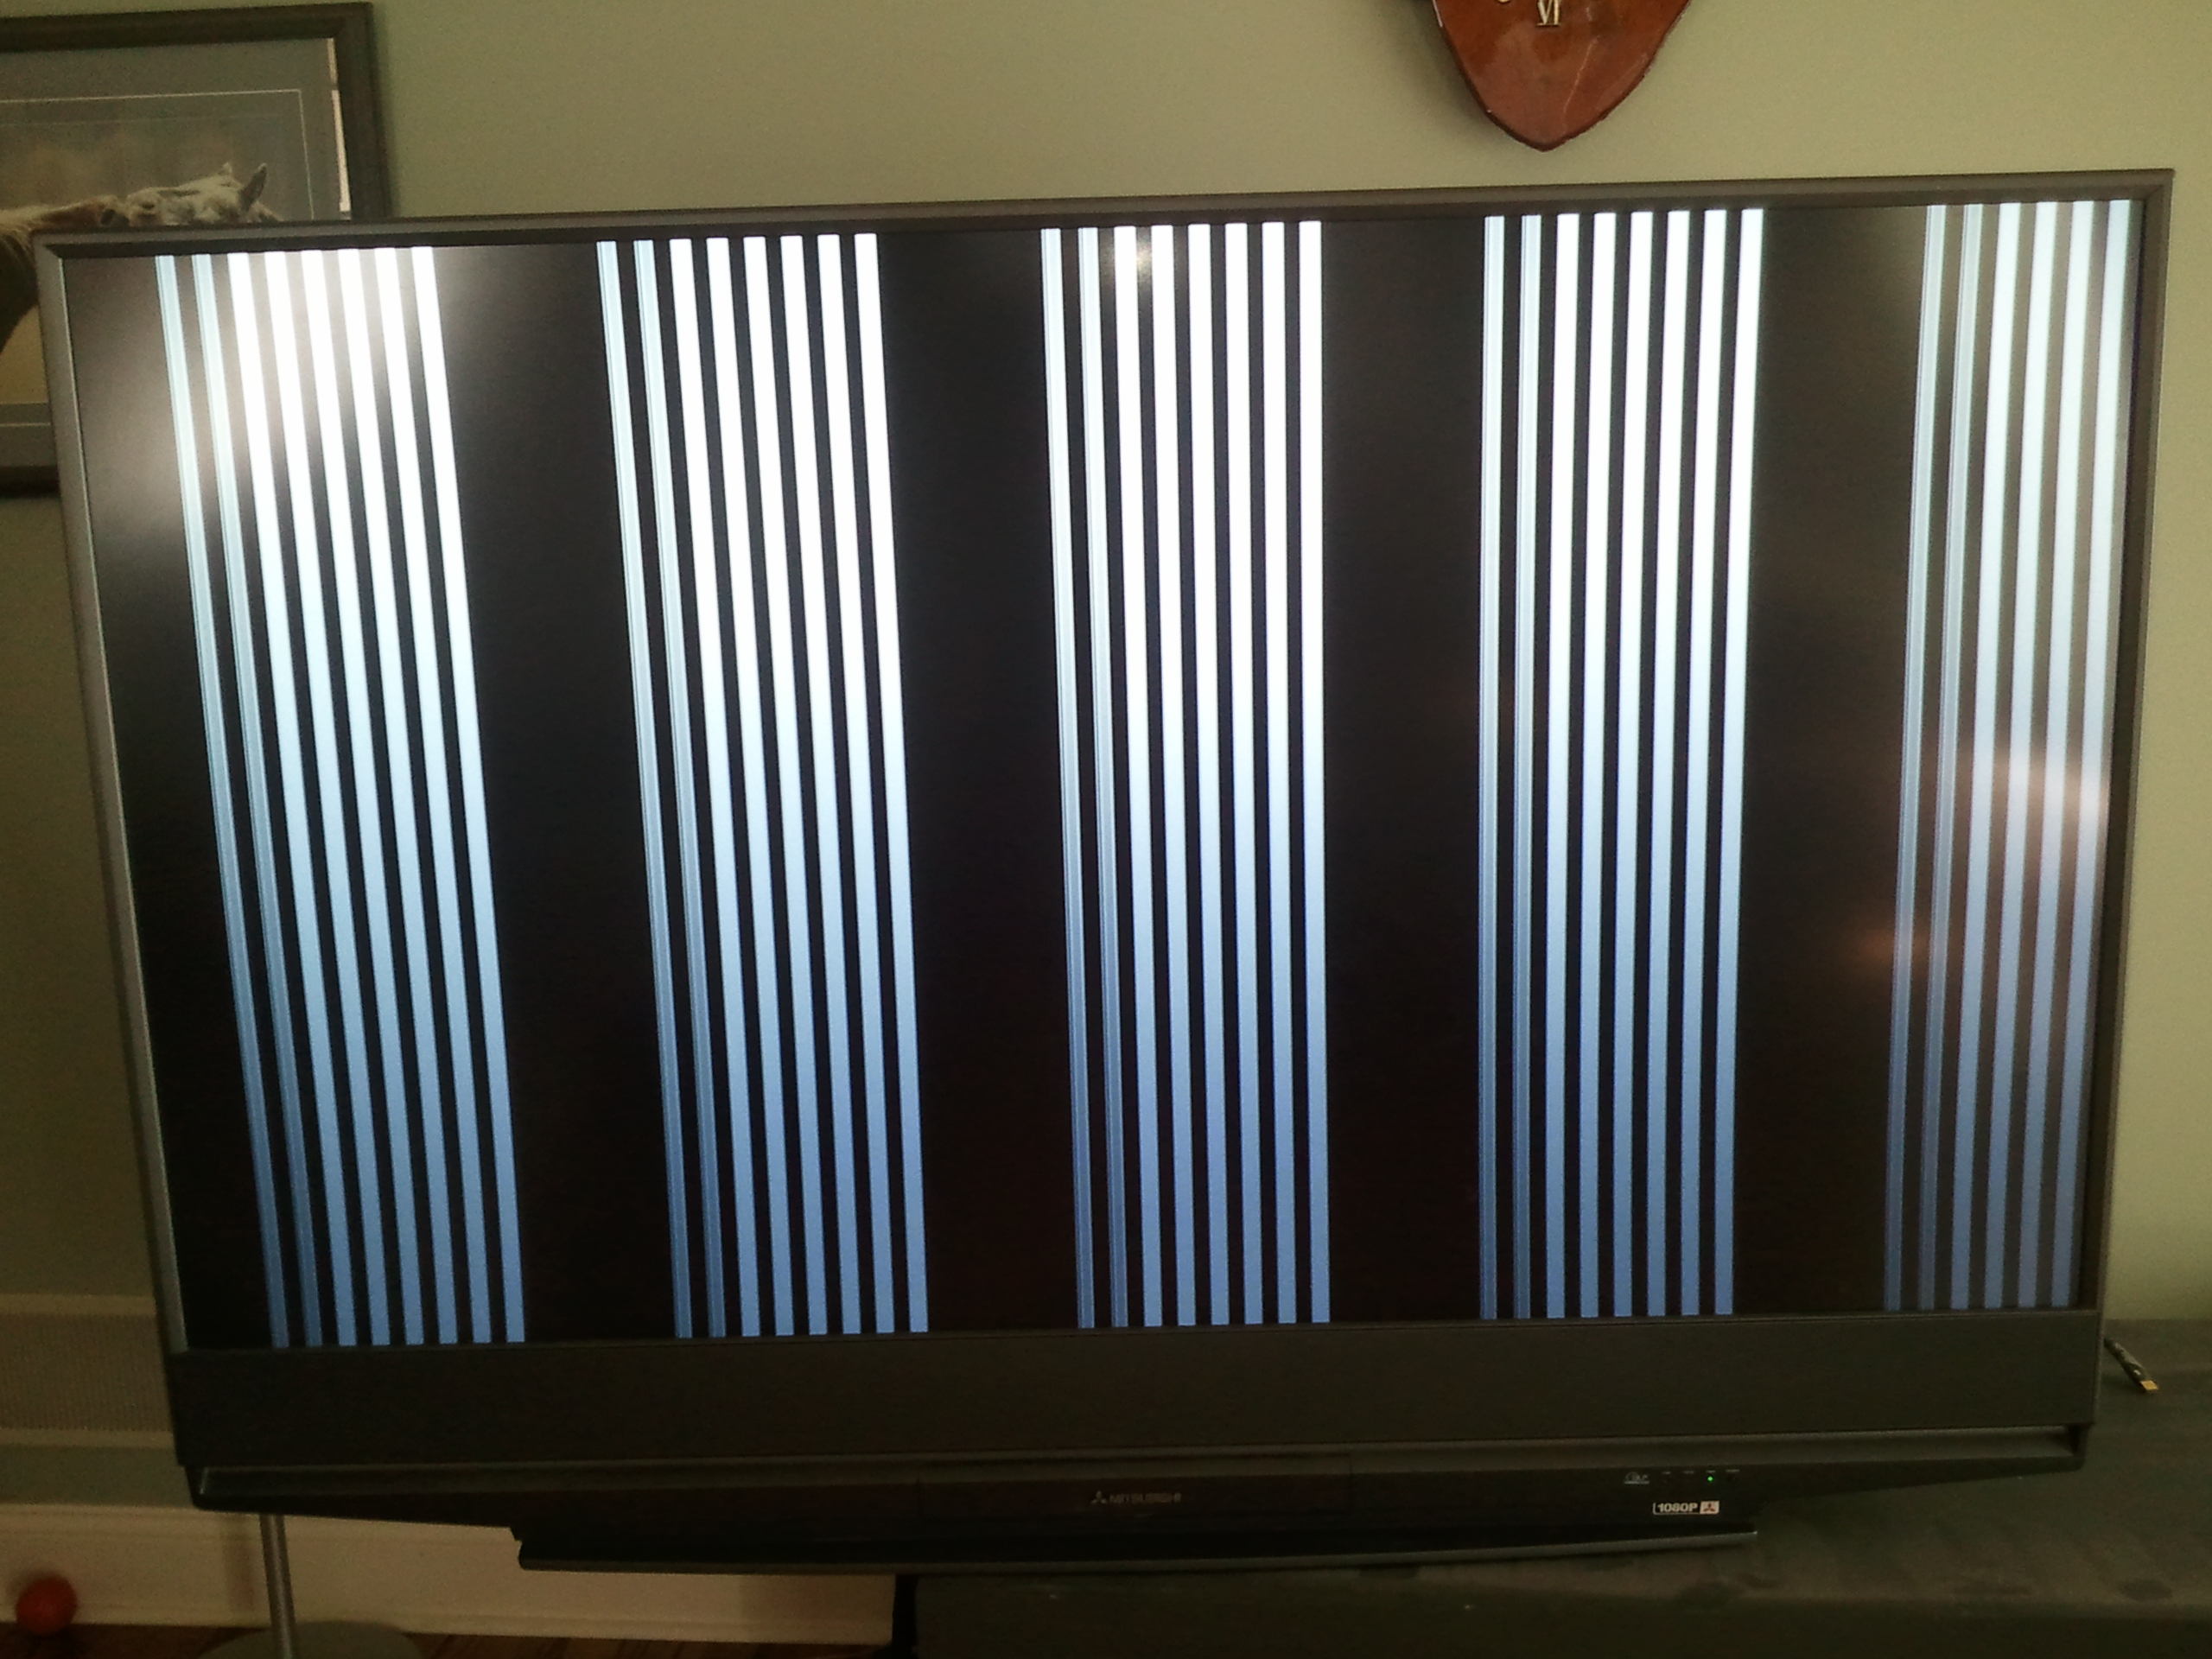 My Mitsubishi DLP TV, WD-65731, has and black vertical lines running